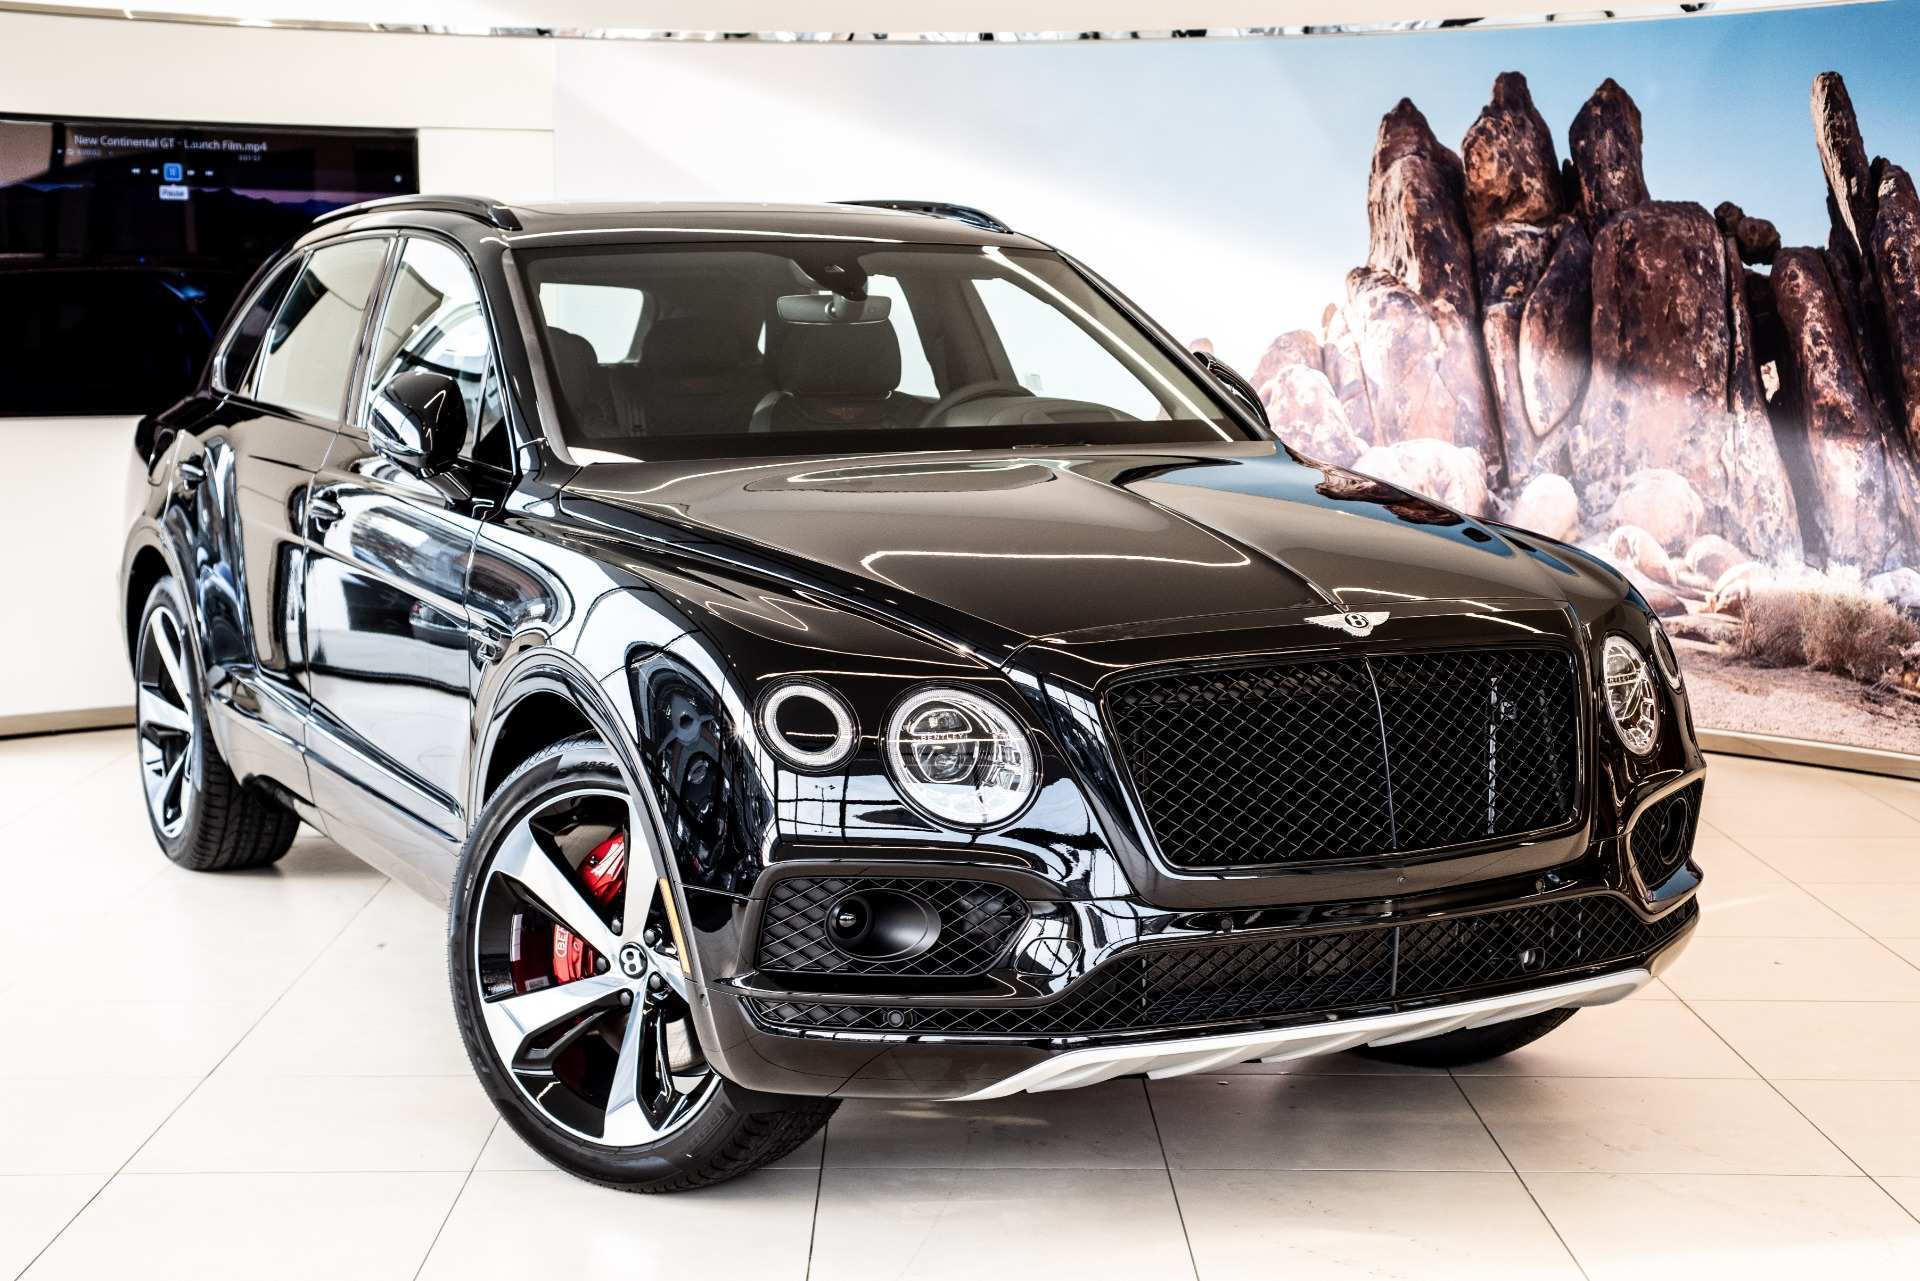 80 All New 2019 Bentley Bentayga V8 Price Exterior